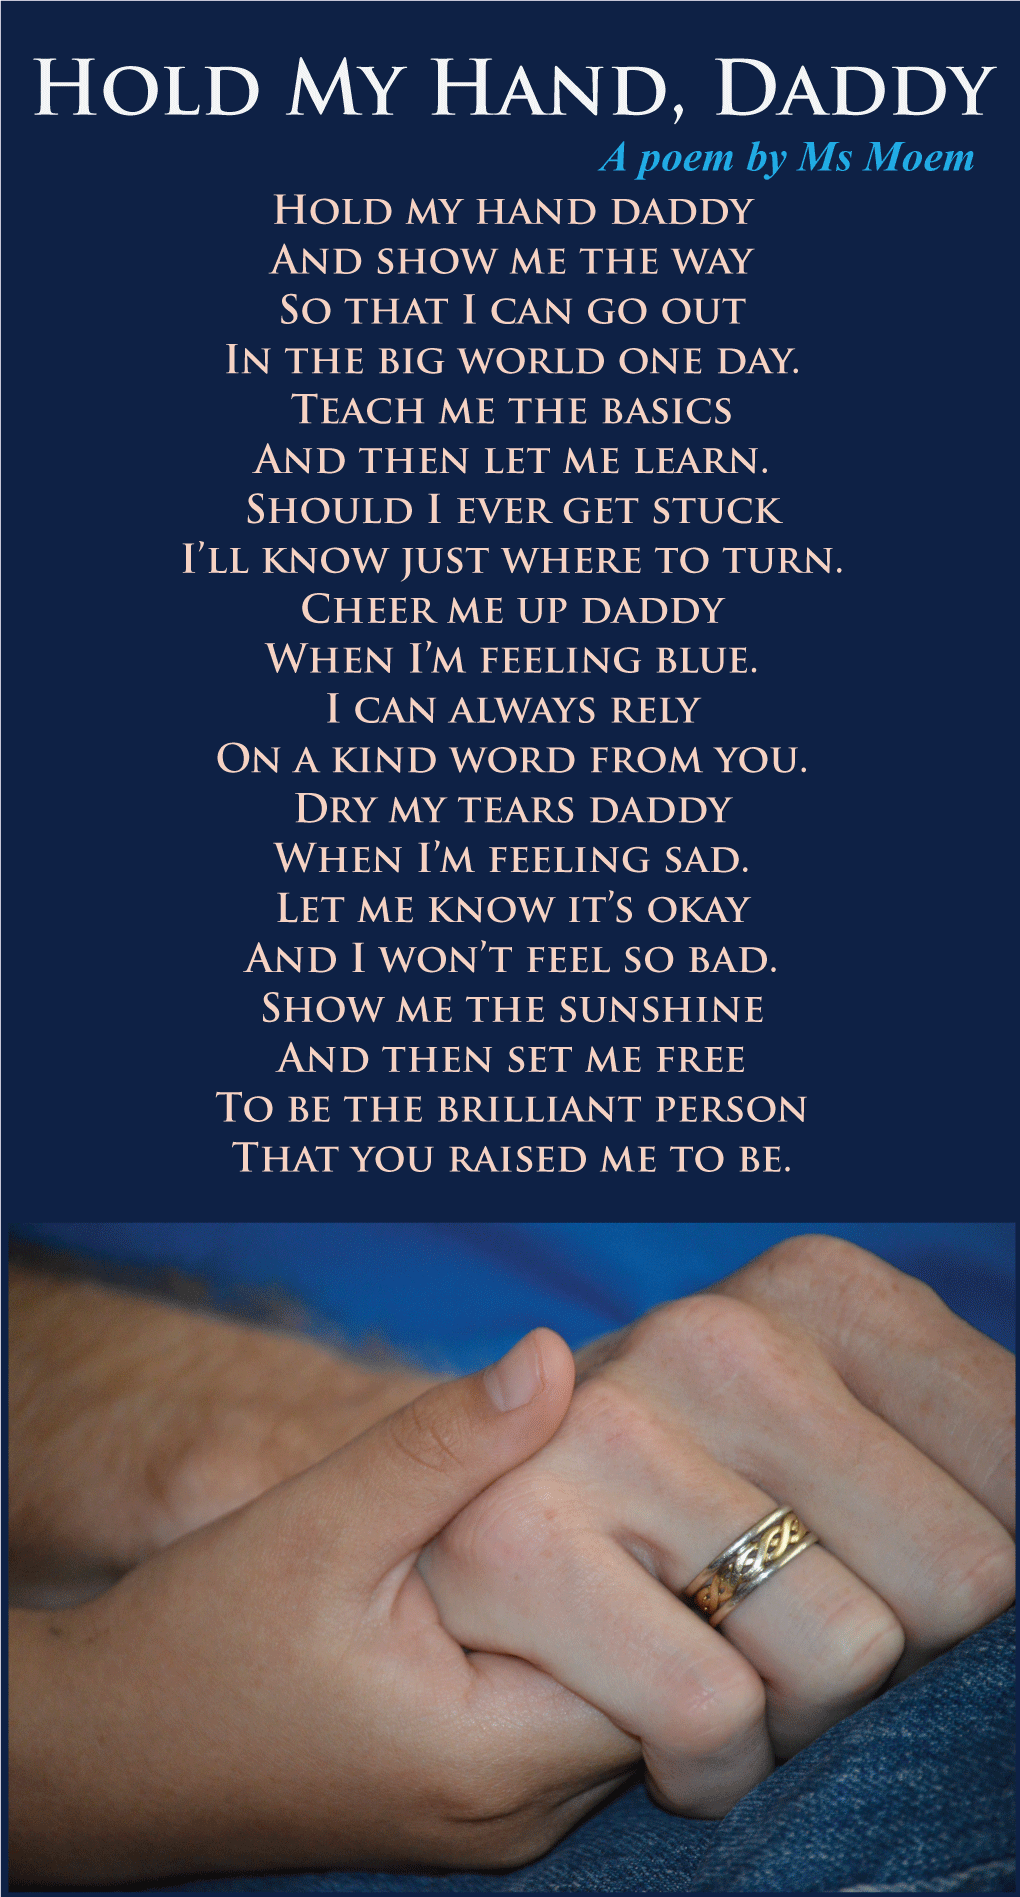 Hold my hand daddy poem for fathers day by msmoem